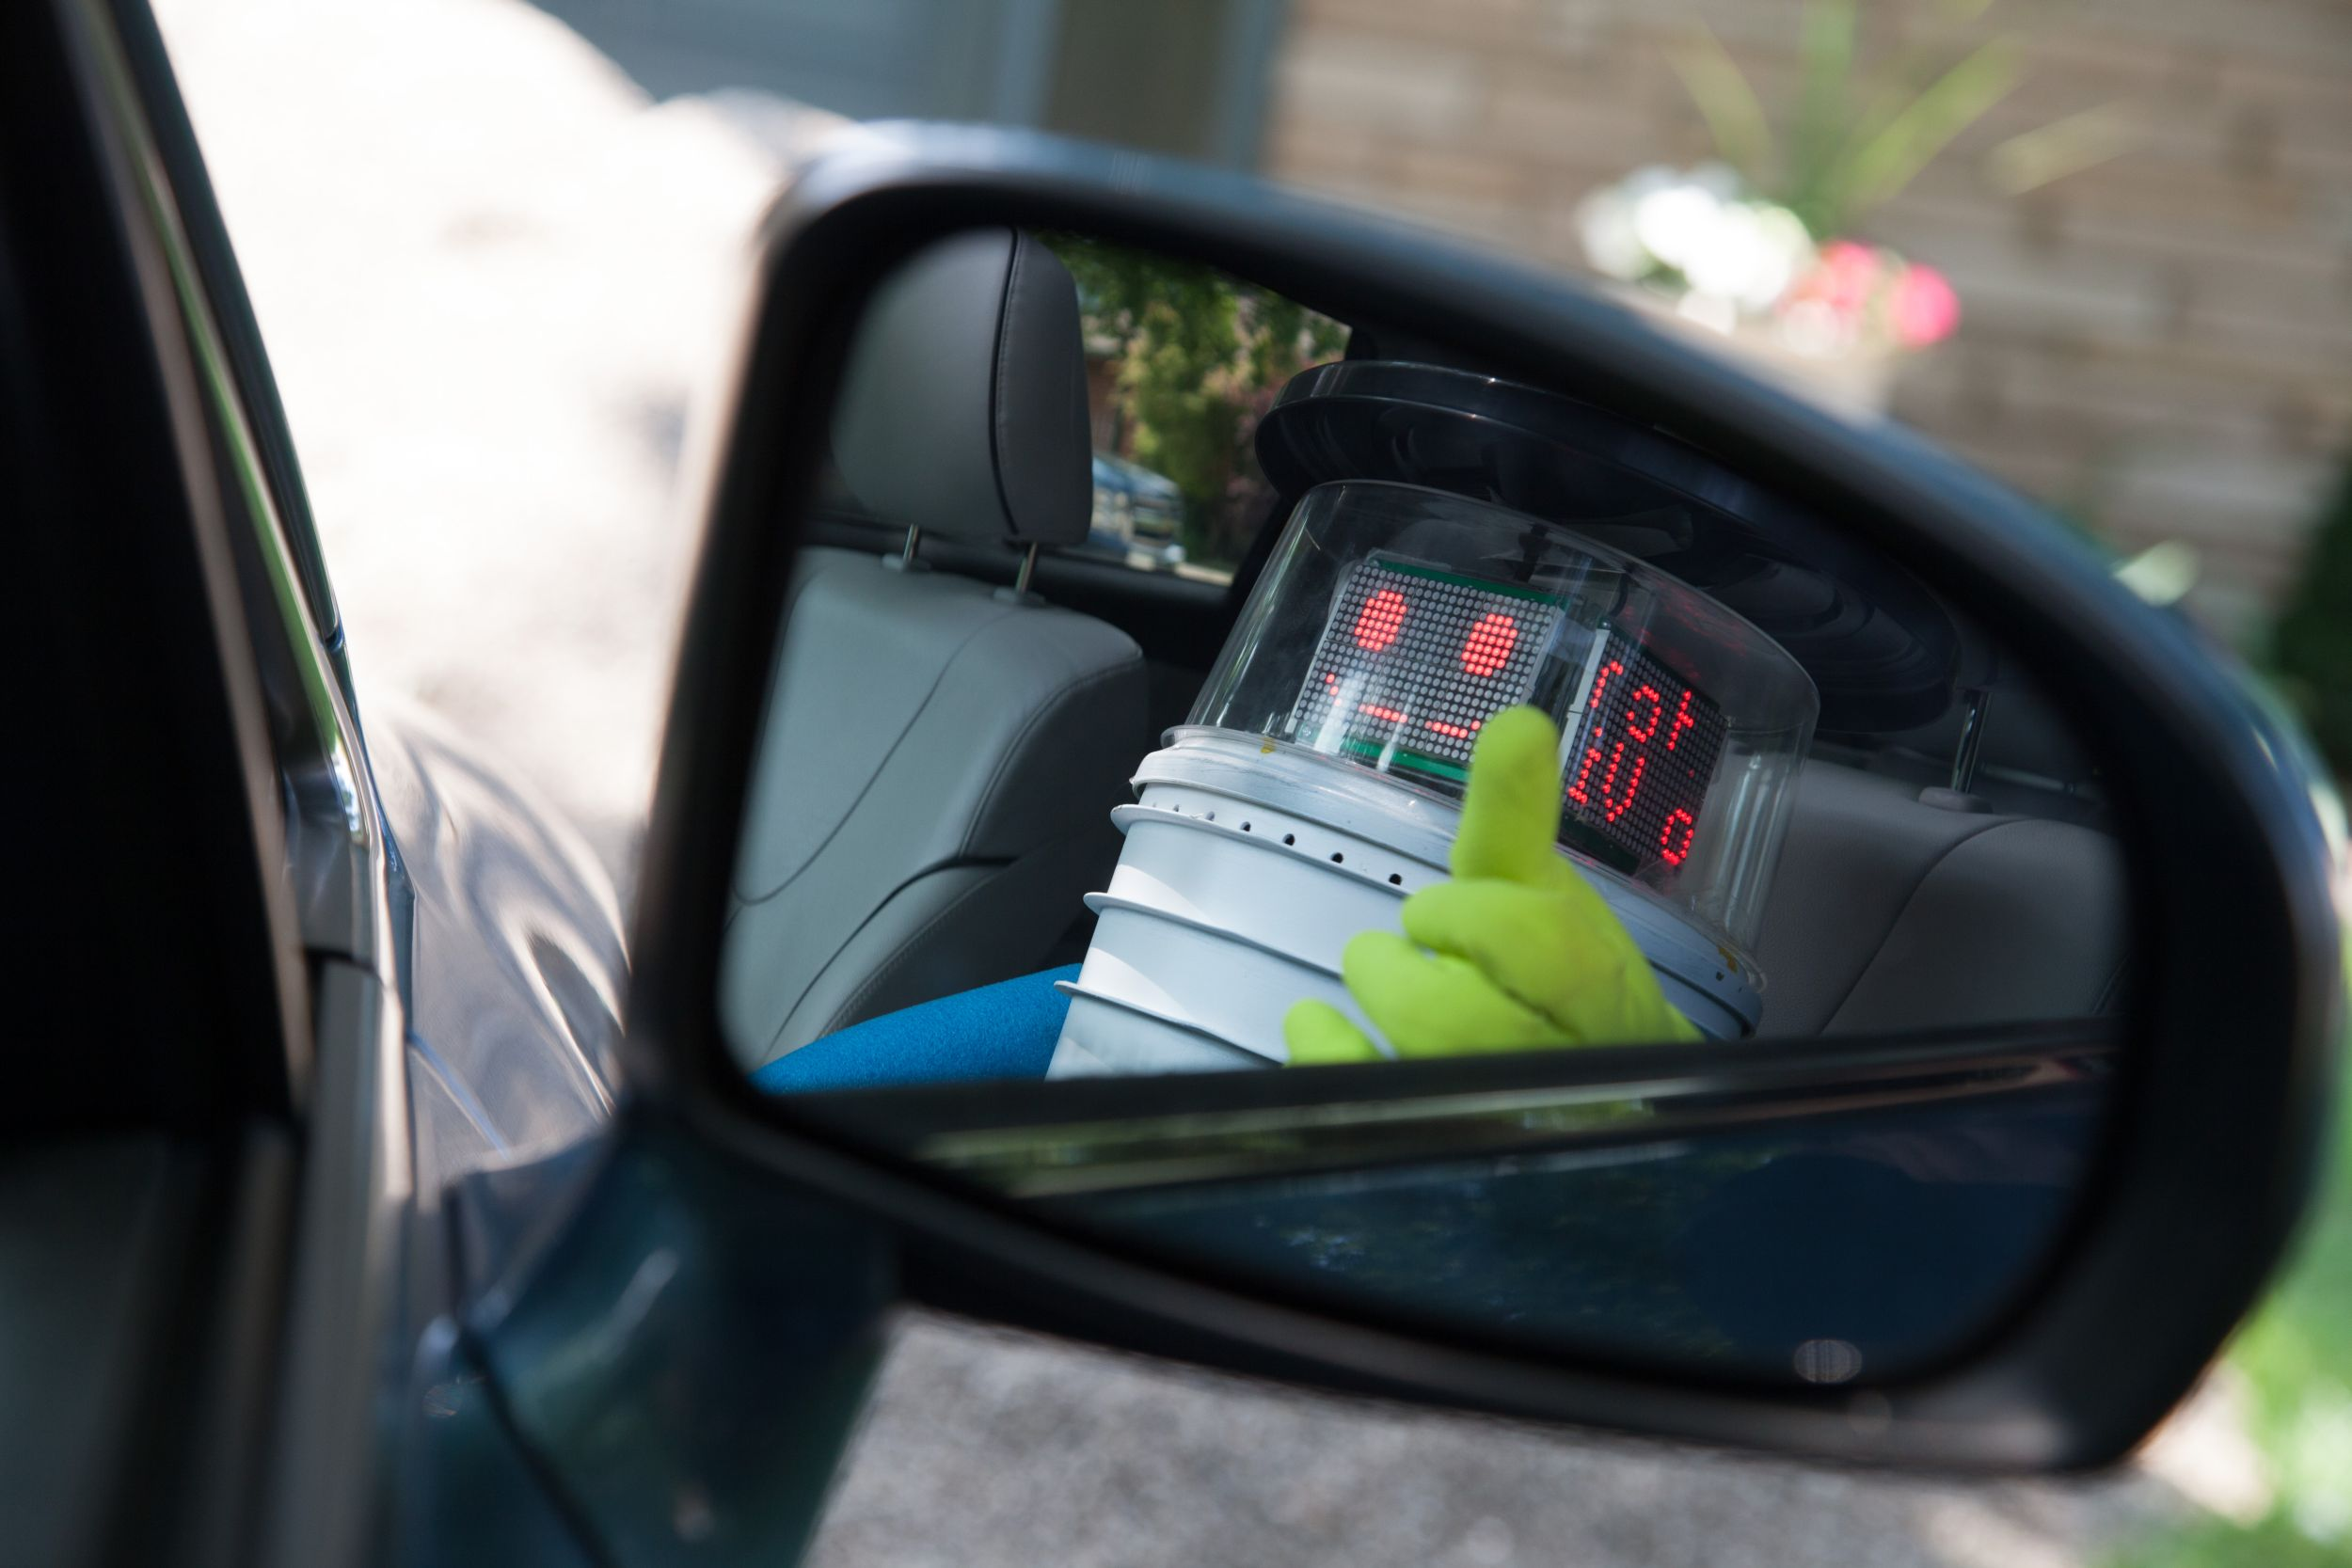 Fliewatüüt-Panne? Nope. It's Old Hitchbot on his way durch Currywurst-Country (Foto: Norbert Guthier / Ryerson University, Toronto, Canada)